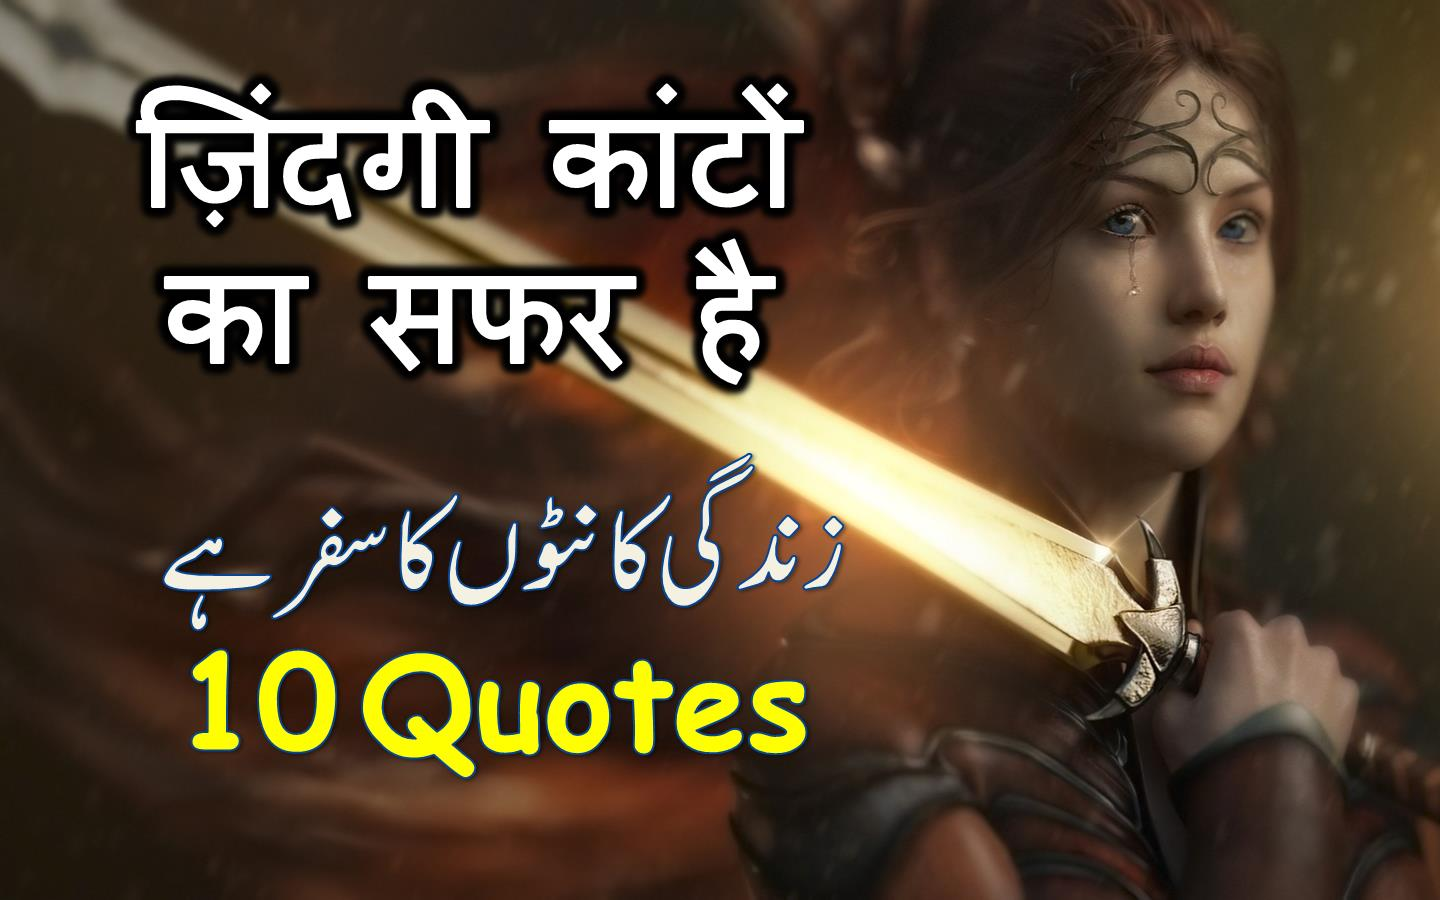 Quotes about life in urdu hindi